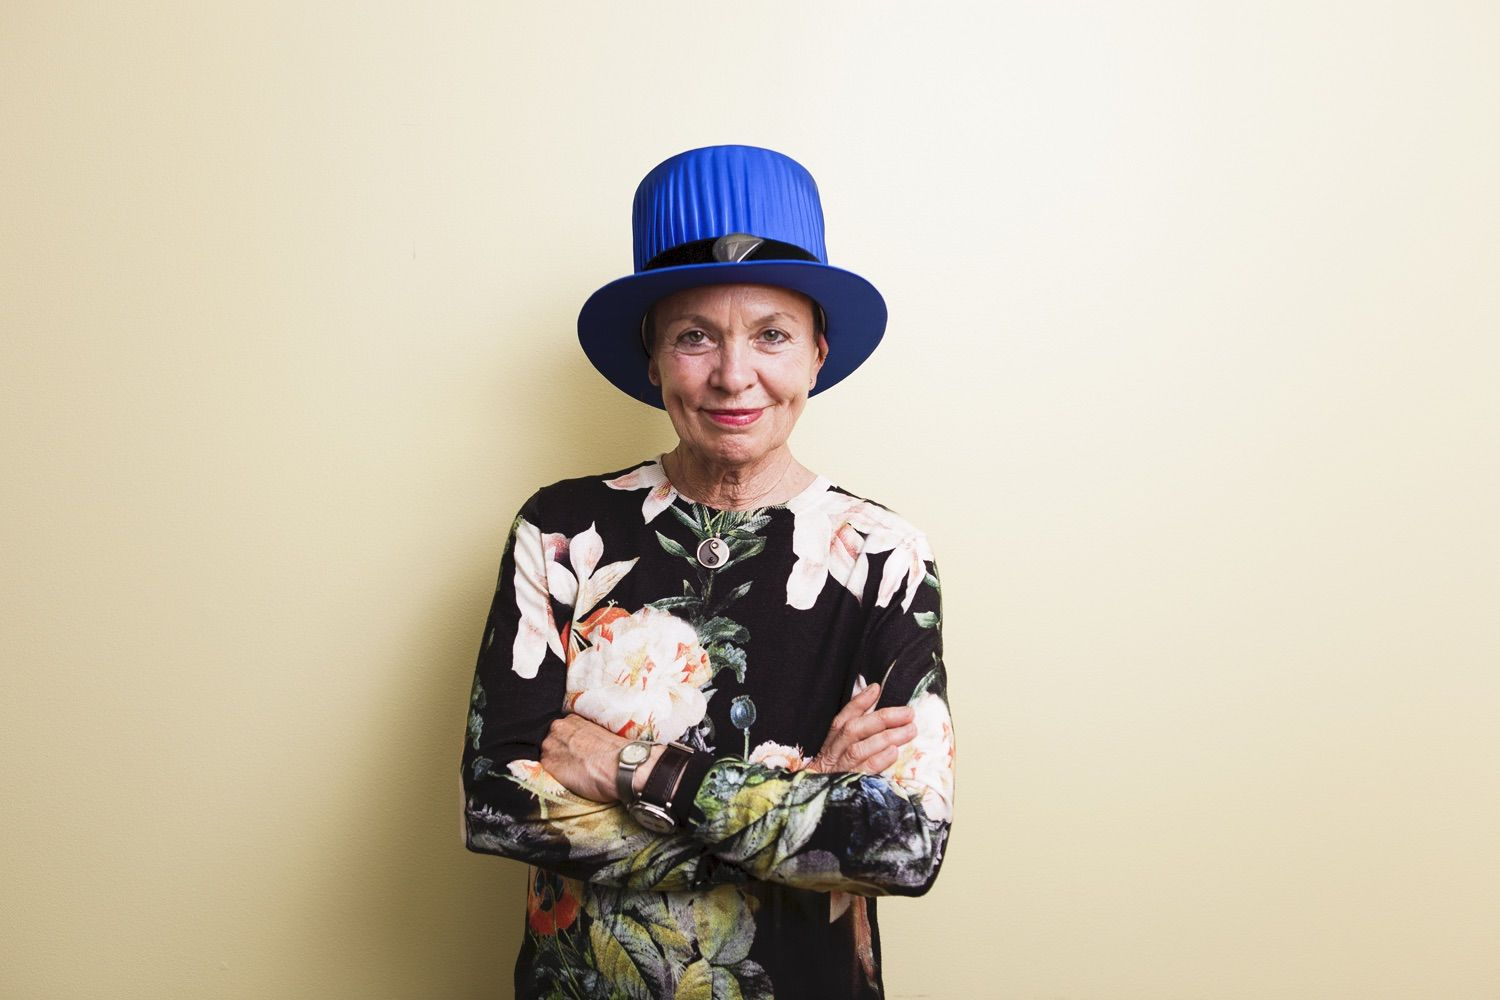 The 8th honorary doctor, artist Laurie Anderson received her honorary degree later on 23.8.2014. Photo: Heta Saukkonen